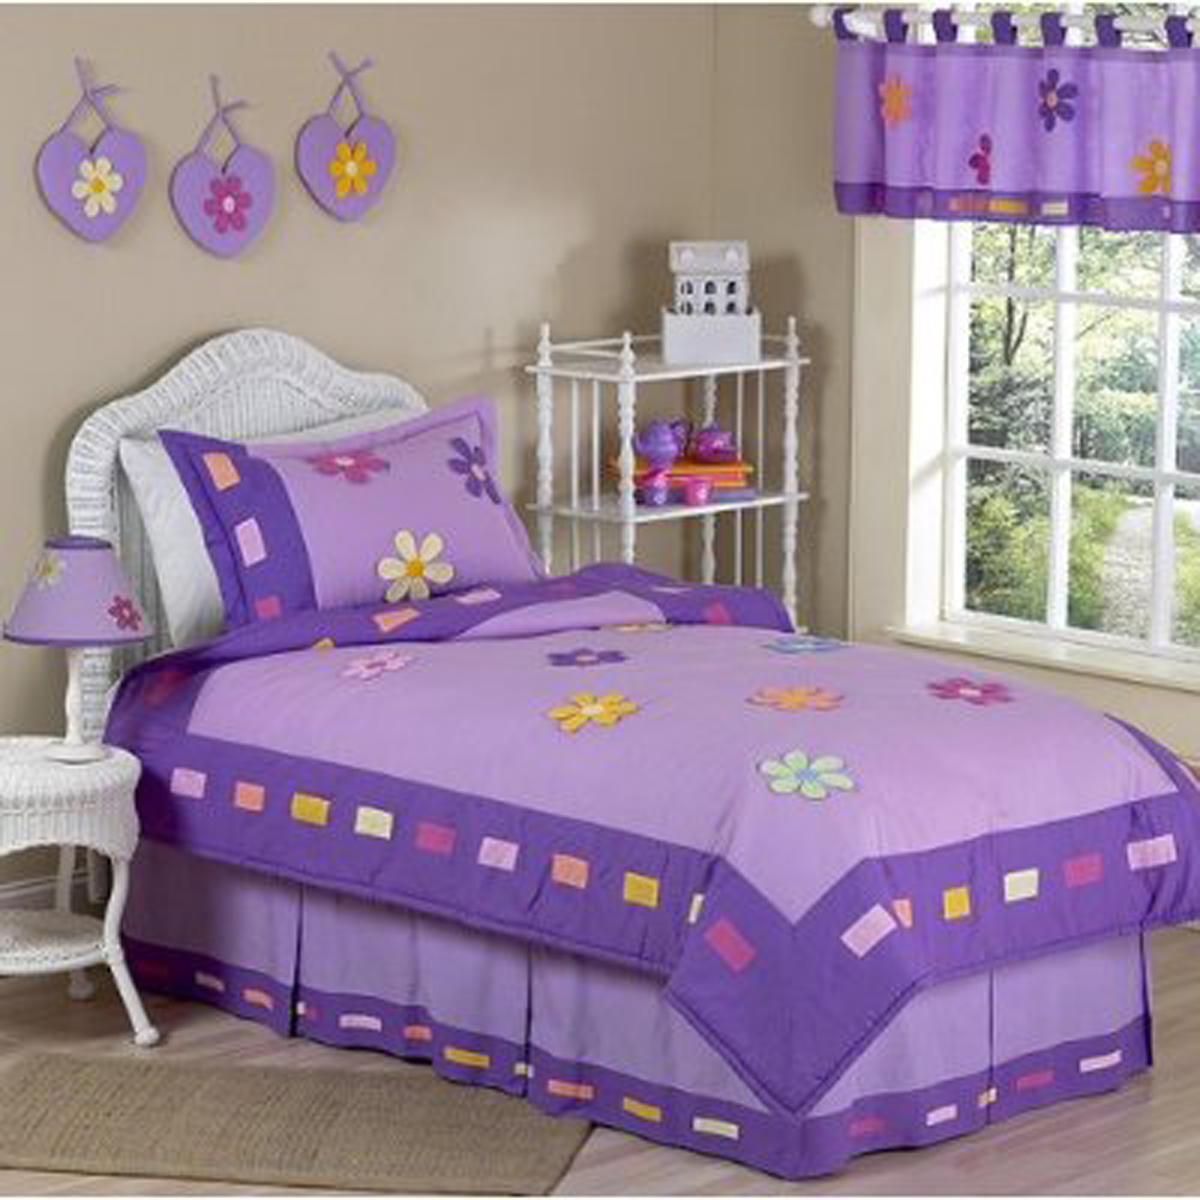 Comfortable kids bed set designs for Furniture for toddlers room